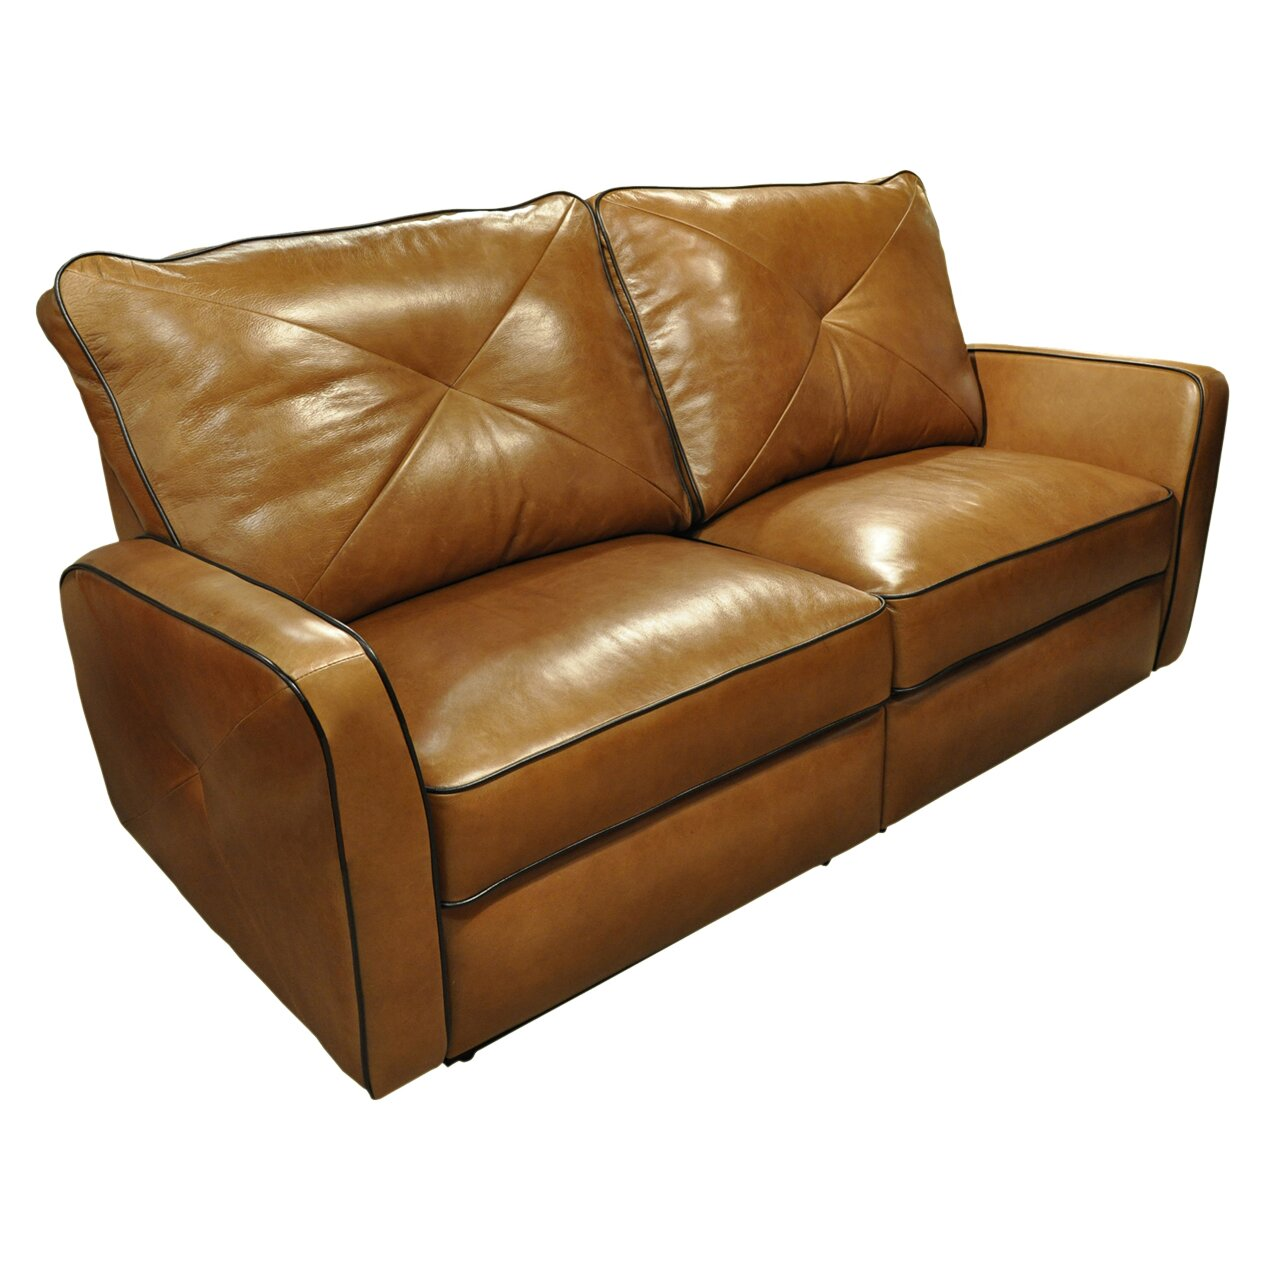 Omnia leather bahama leather reclining loveseat reviews wayfair Reclining loveseat sale